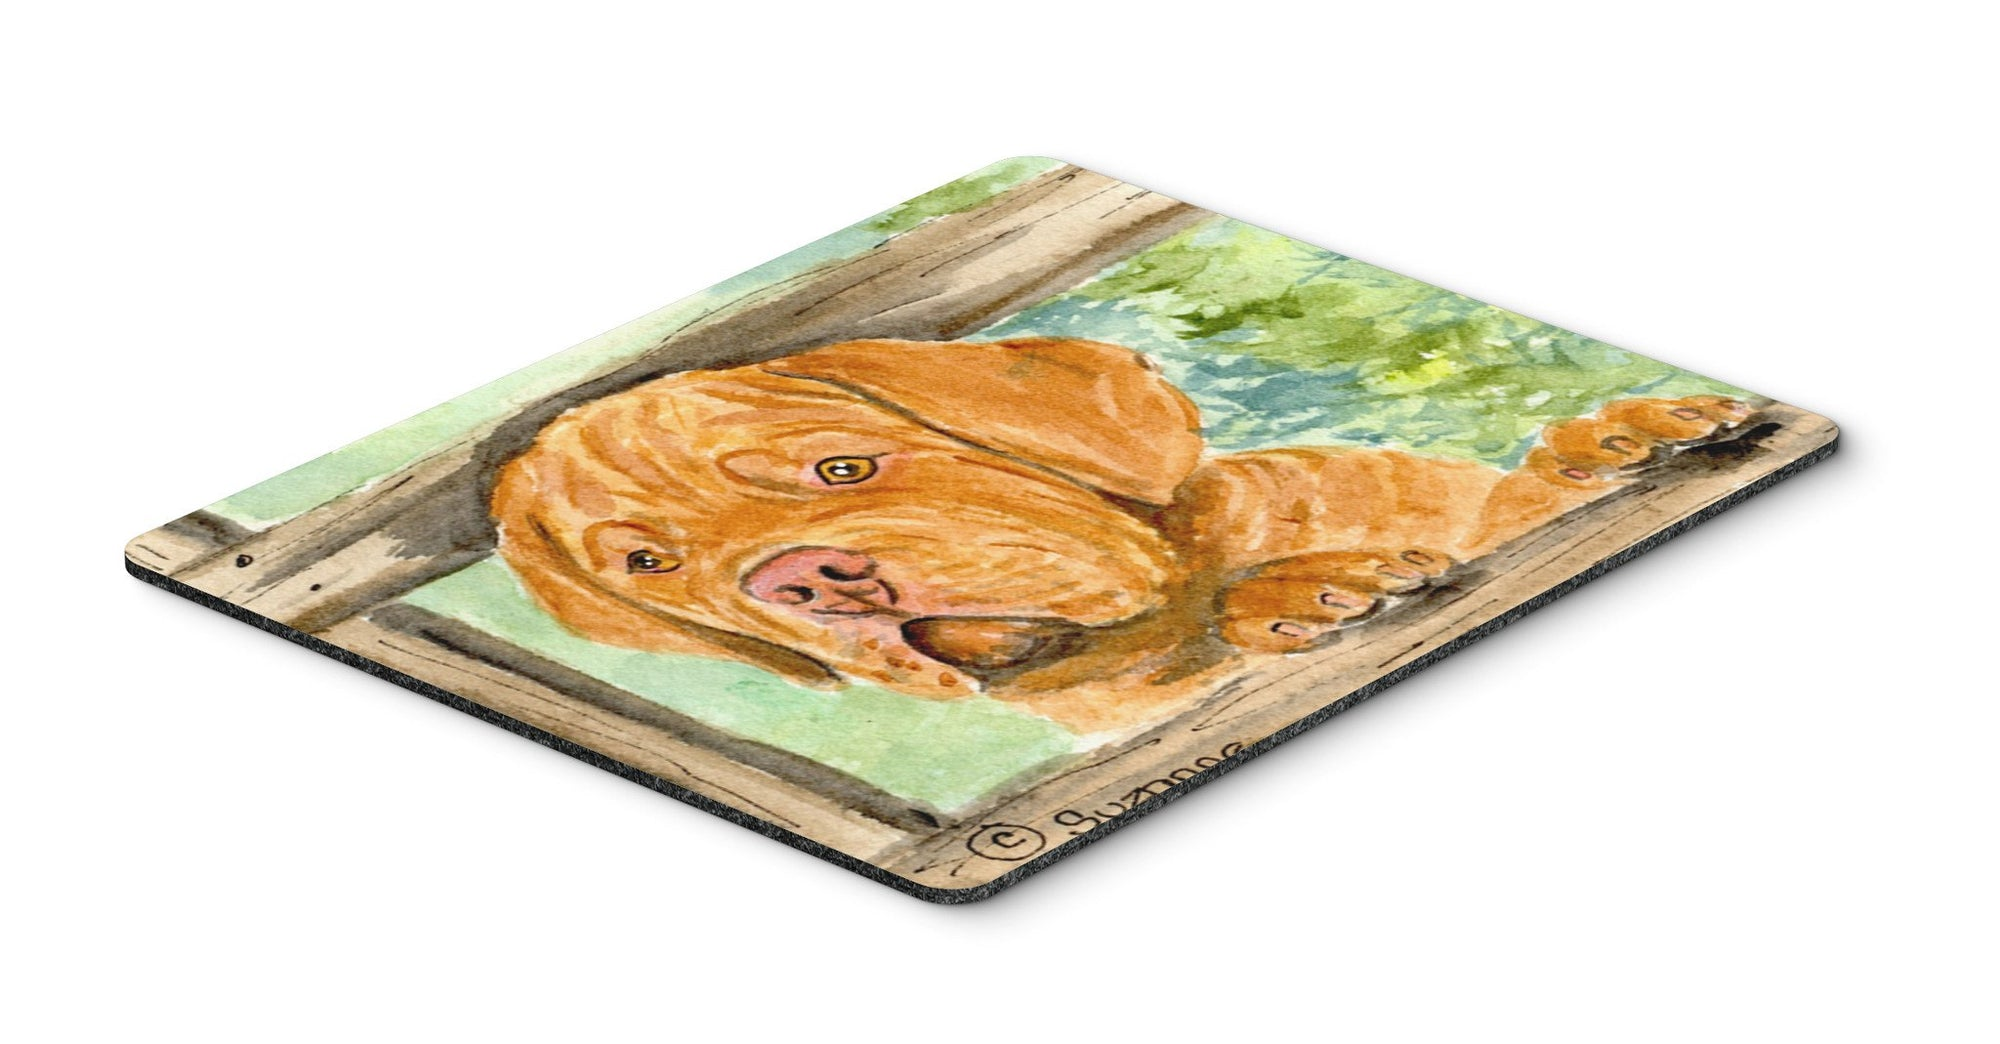 Dogue de Bordeaux Mouse pad, hot pad, or trivet by Caroline's Treasures